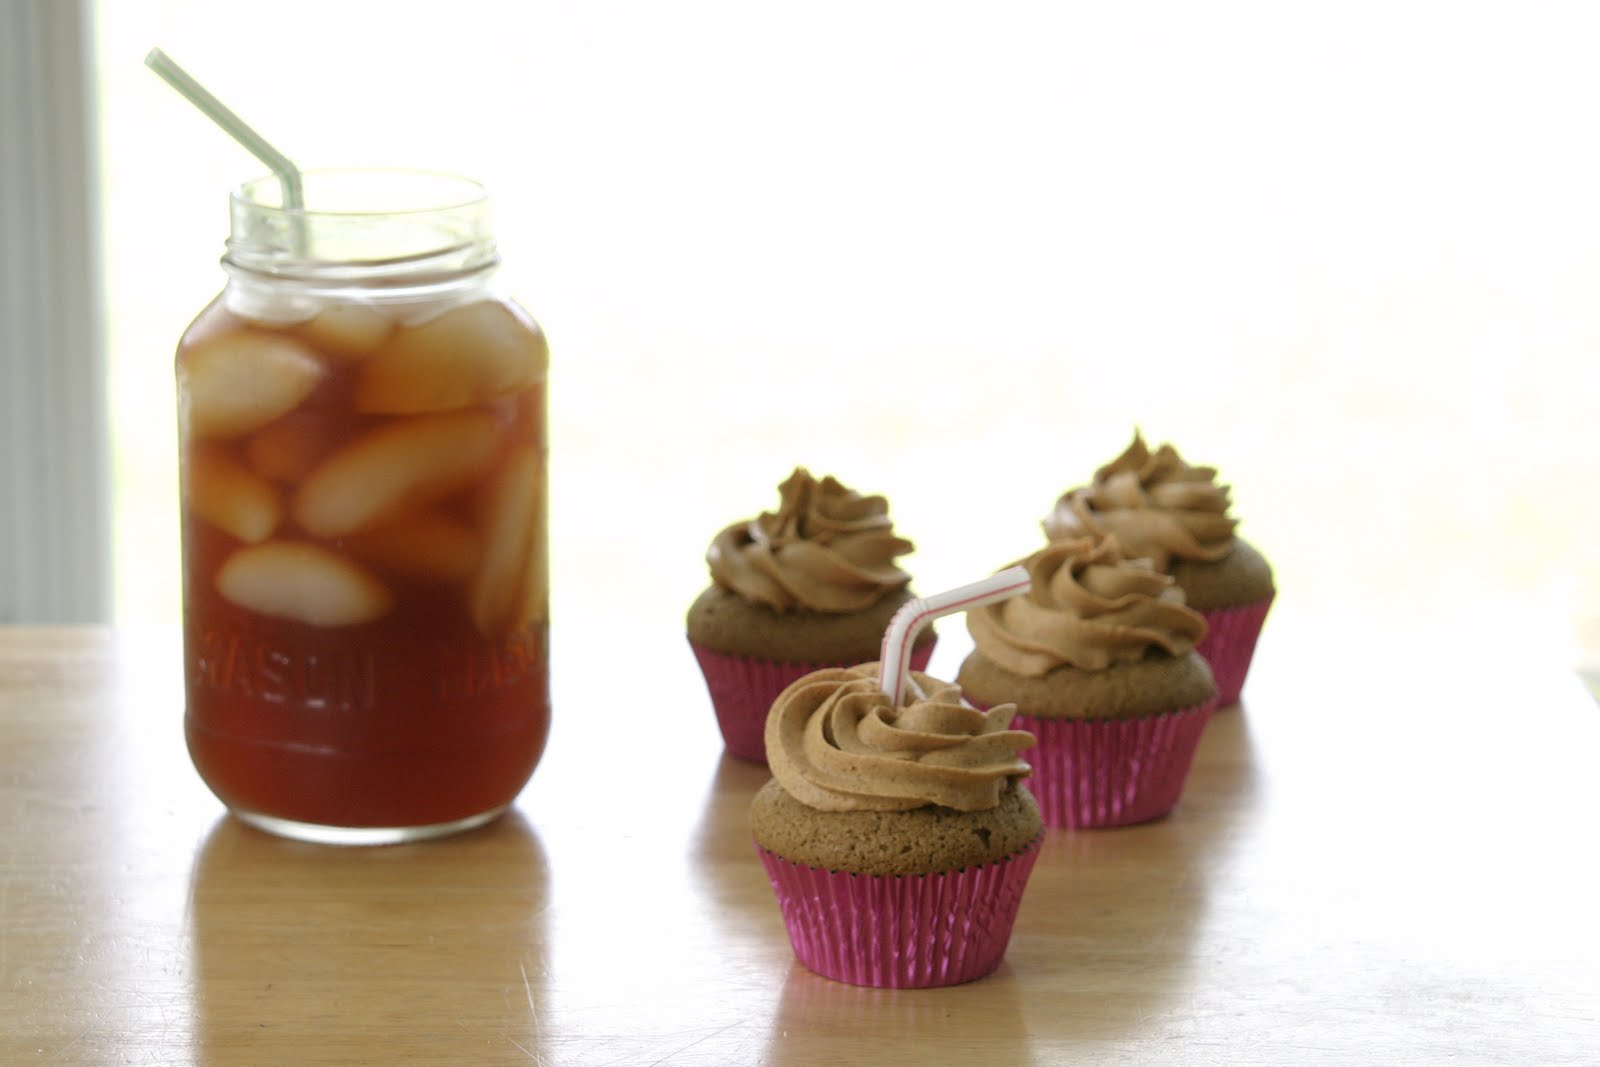 ... raspberry iced tea cupcakes recipe yummly raspberry iced tea cupcakes